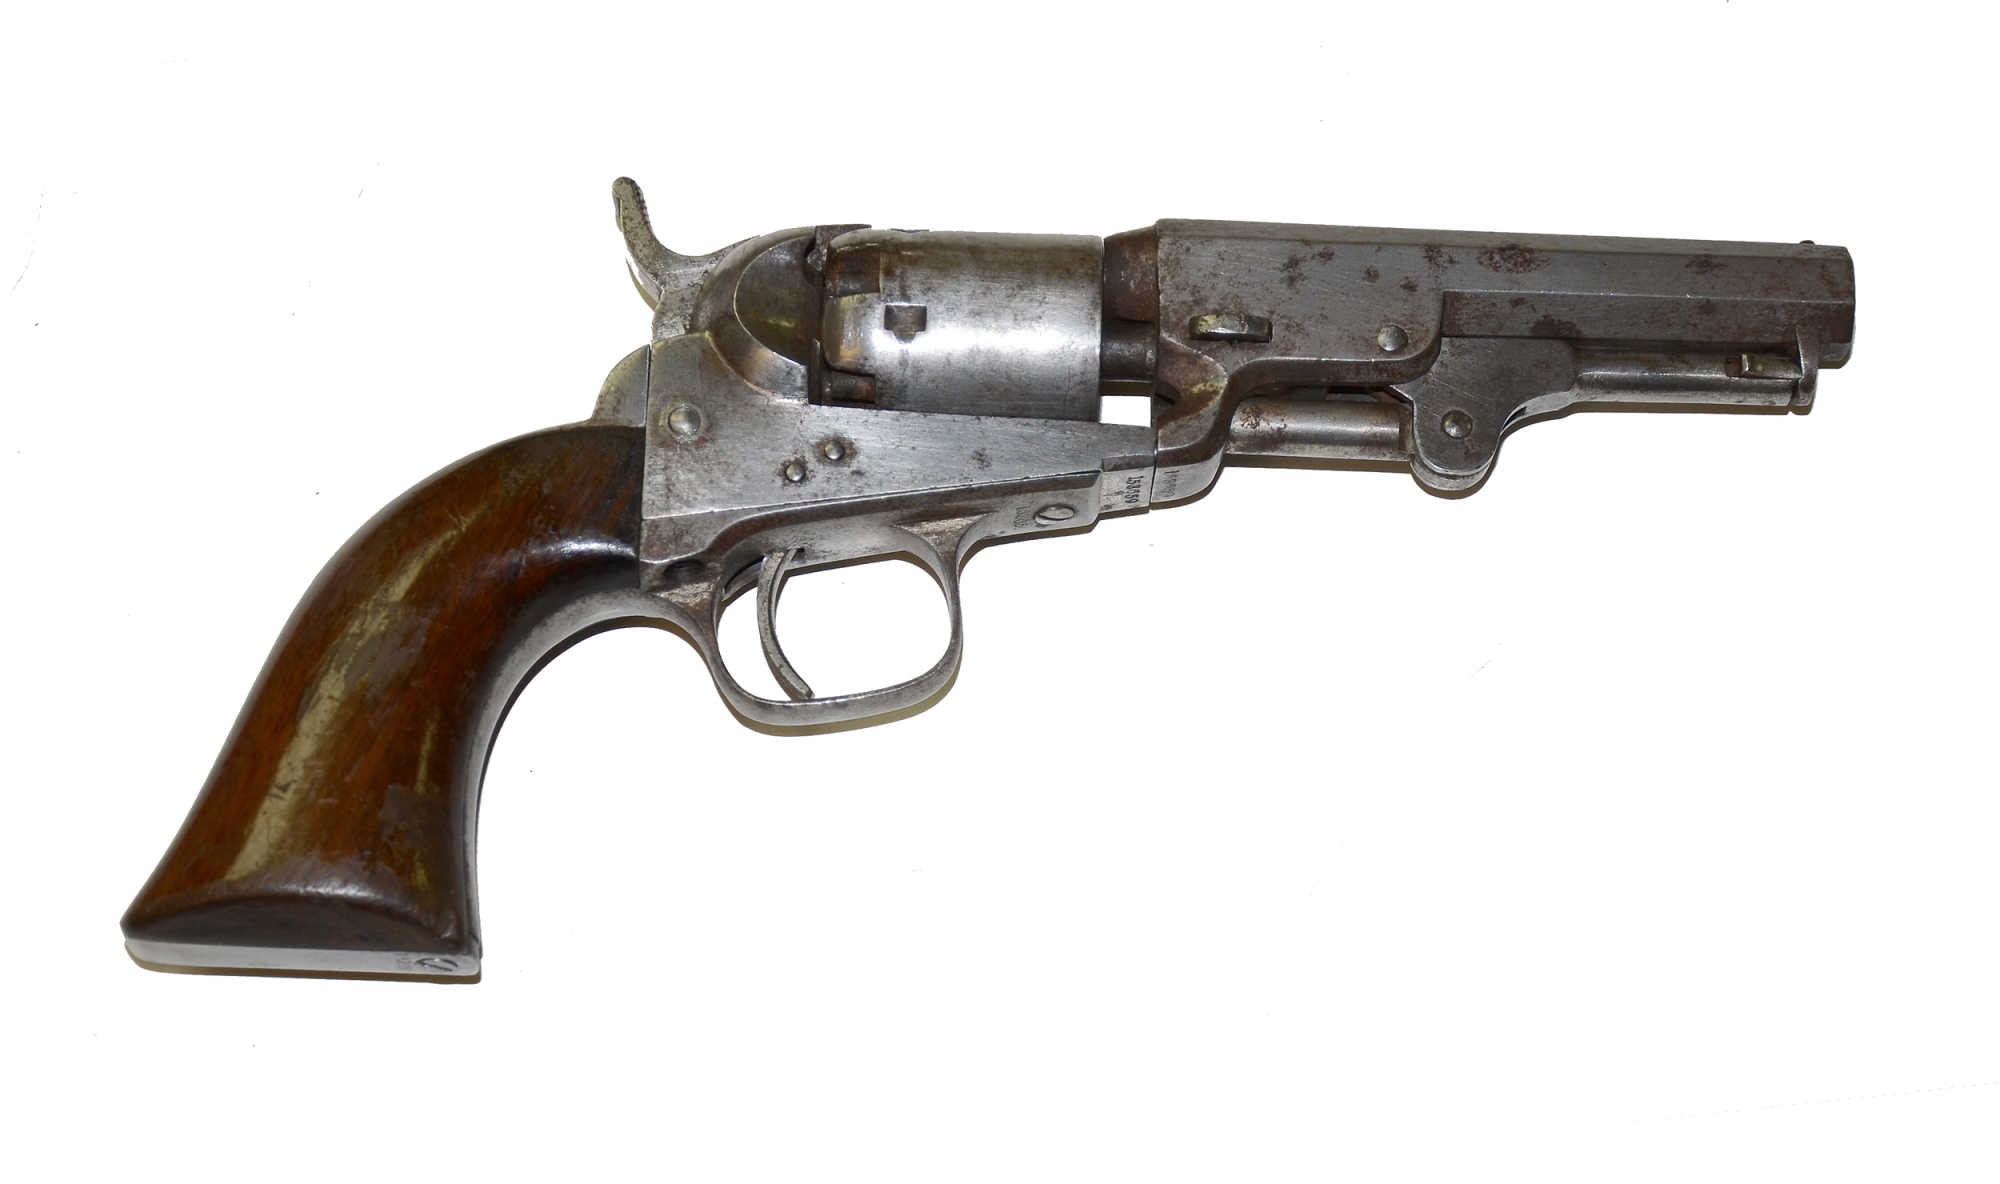 IRON FRAME COLT MODEL 1849 POCKET REVOLVER IN GOOD CONDITION